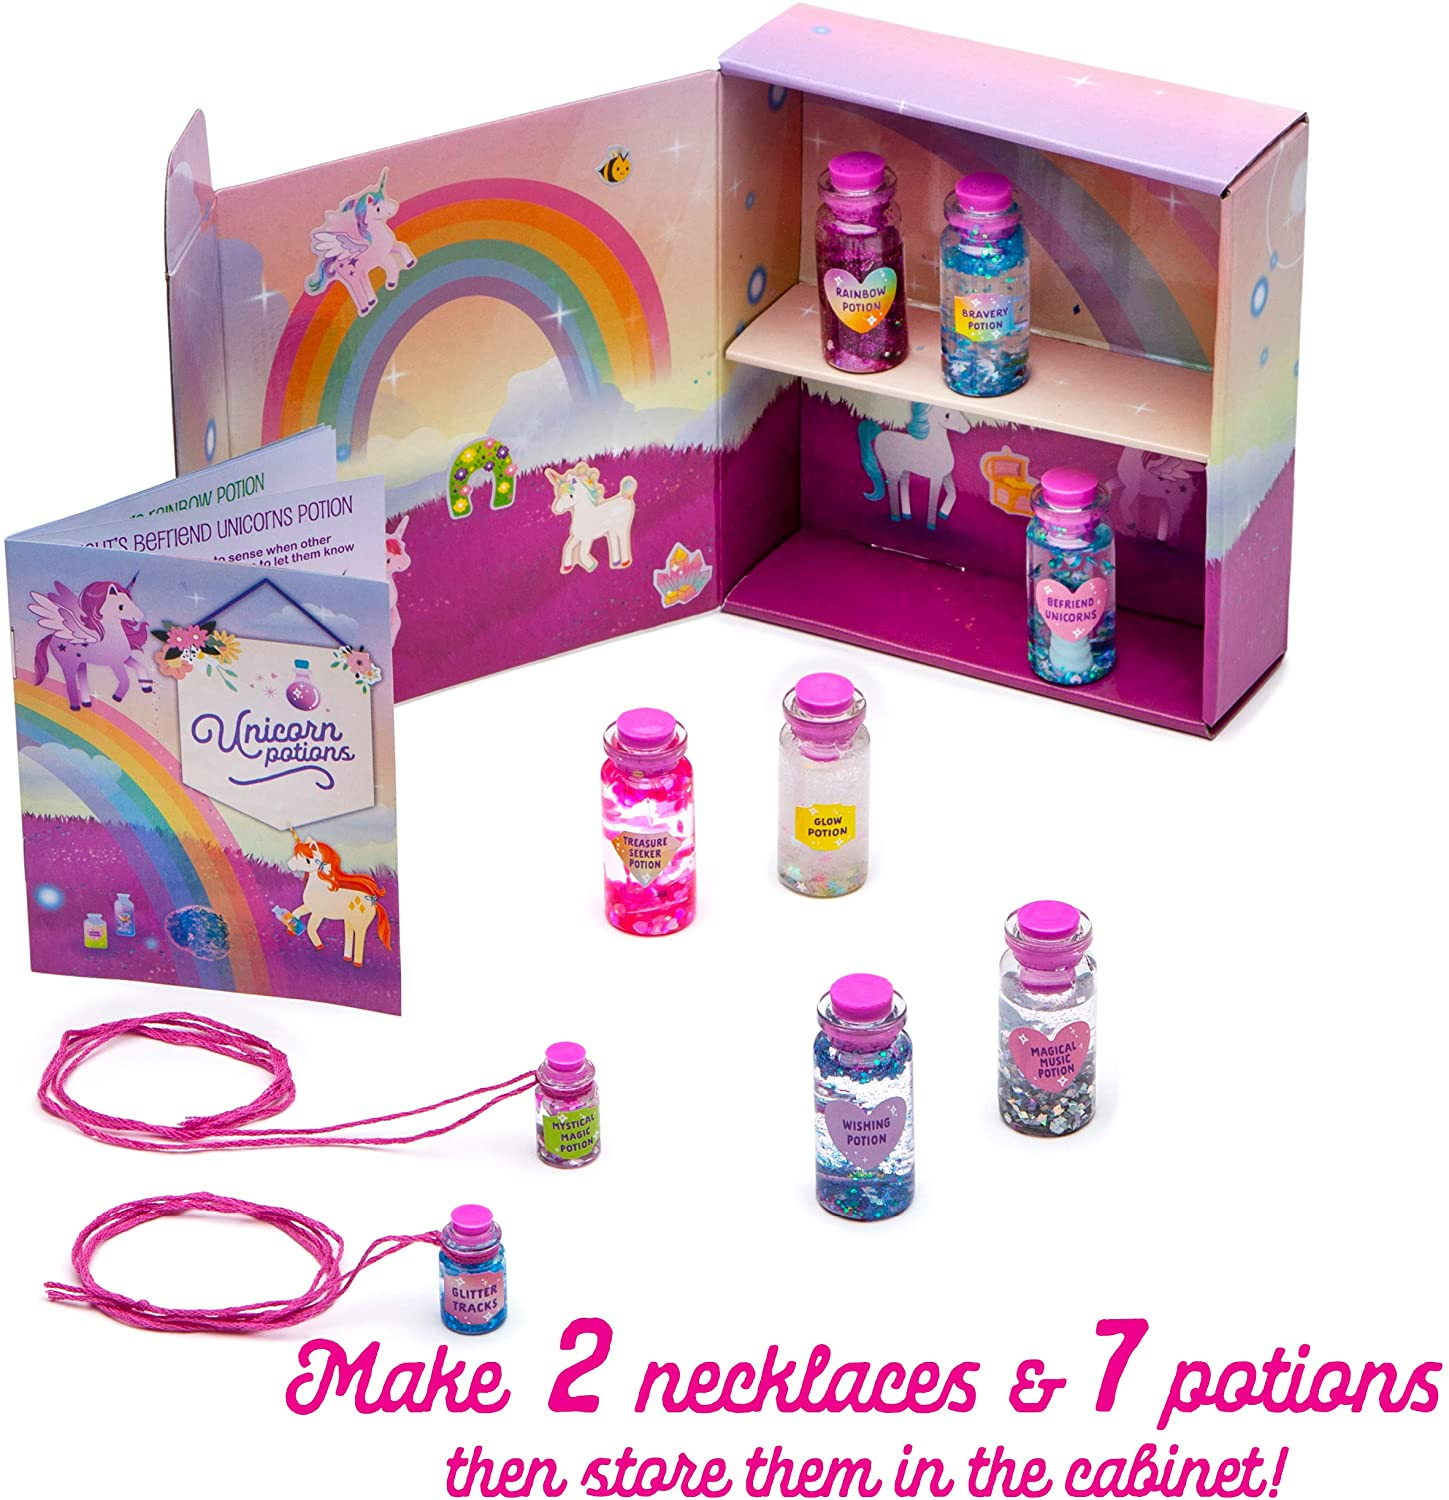 Examples of finished unicorn potion vials